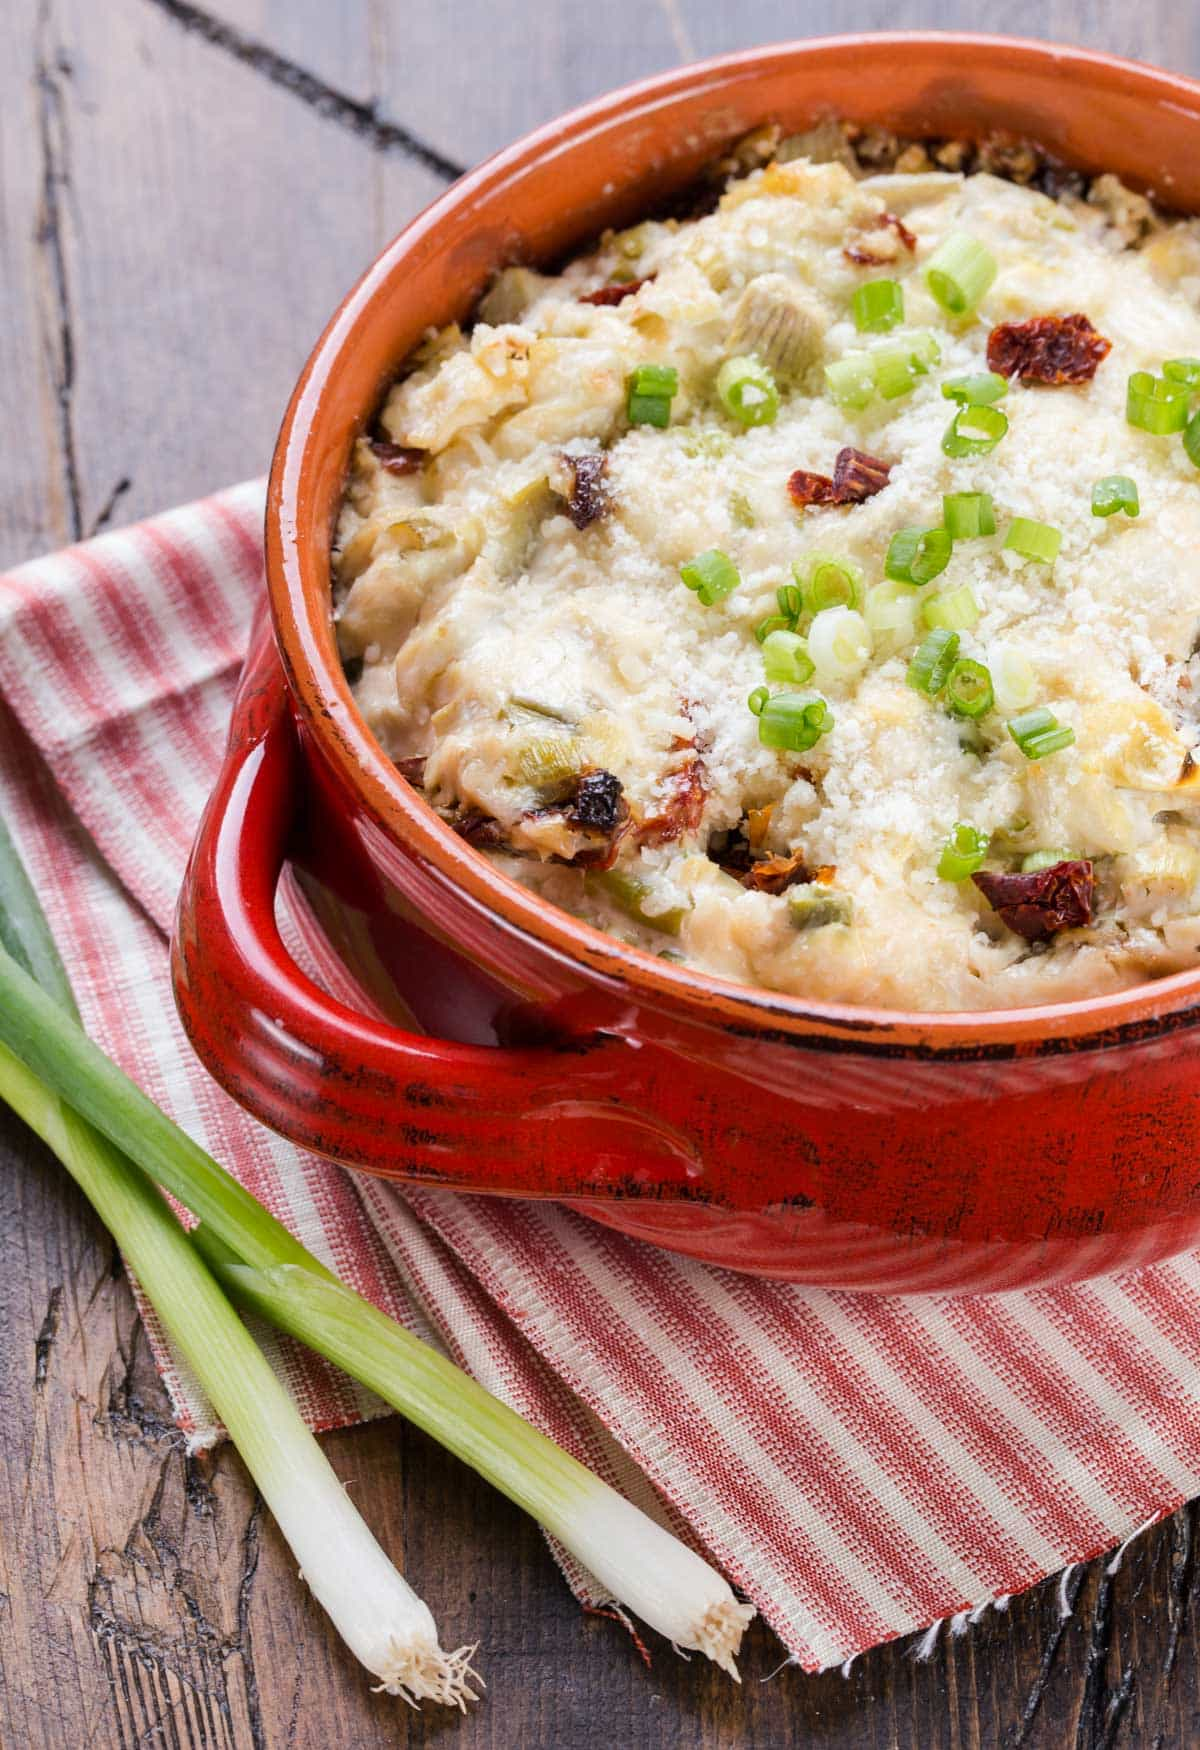 An updated, lighter version of artichoke dip. This Asiago Dip recipe is definitely one that needs to be added to your files! Everyone loves it!